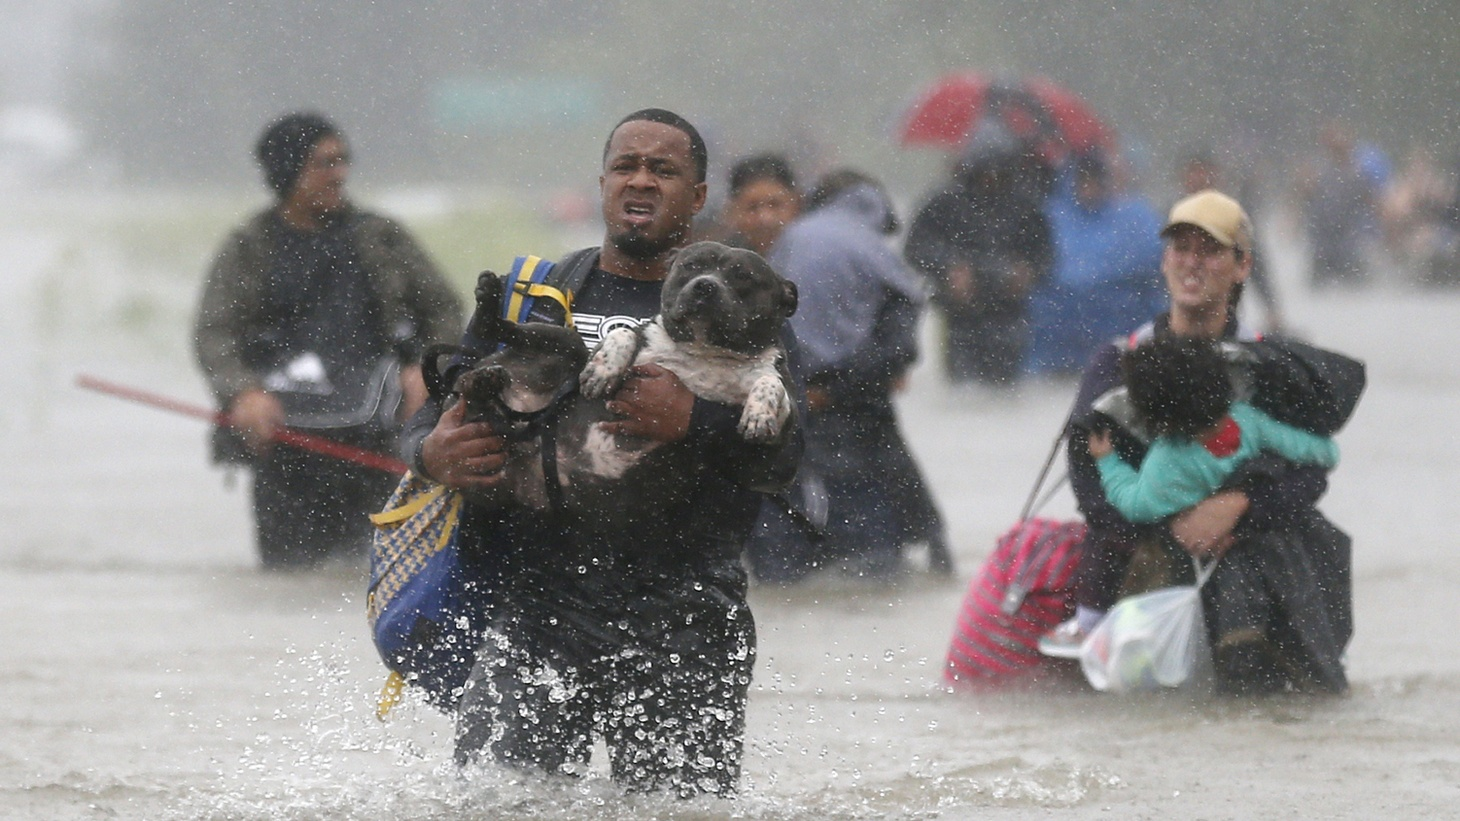 In Texas, some 13 million people live in zones either flooded already or under flood watch — with one trillion gallons of water inundating Harris County in just four days. The rain continues to set national records and floodwaters are still rising. Rescue efforts may last for weeks into the future.